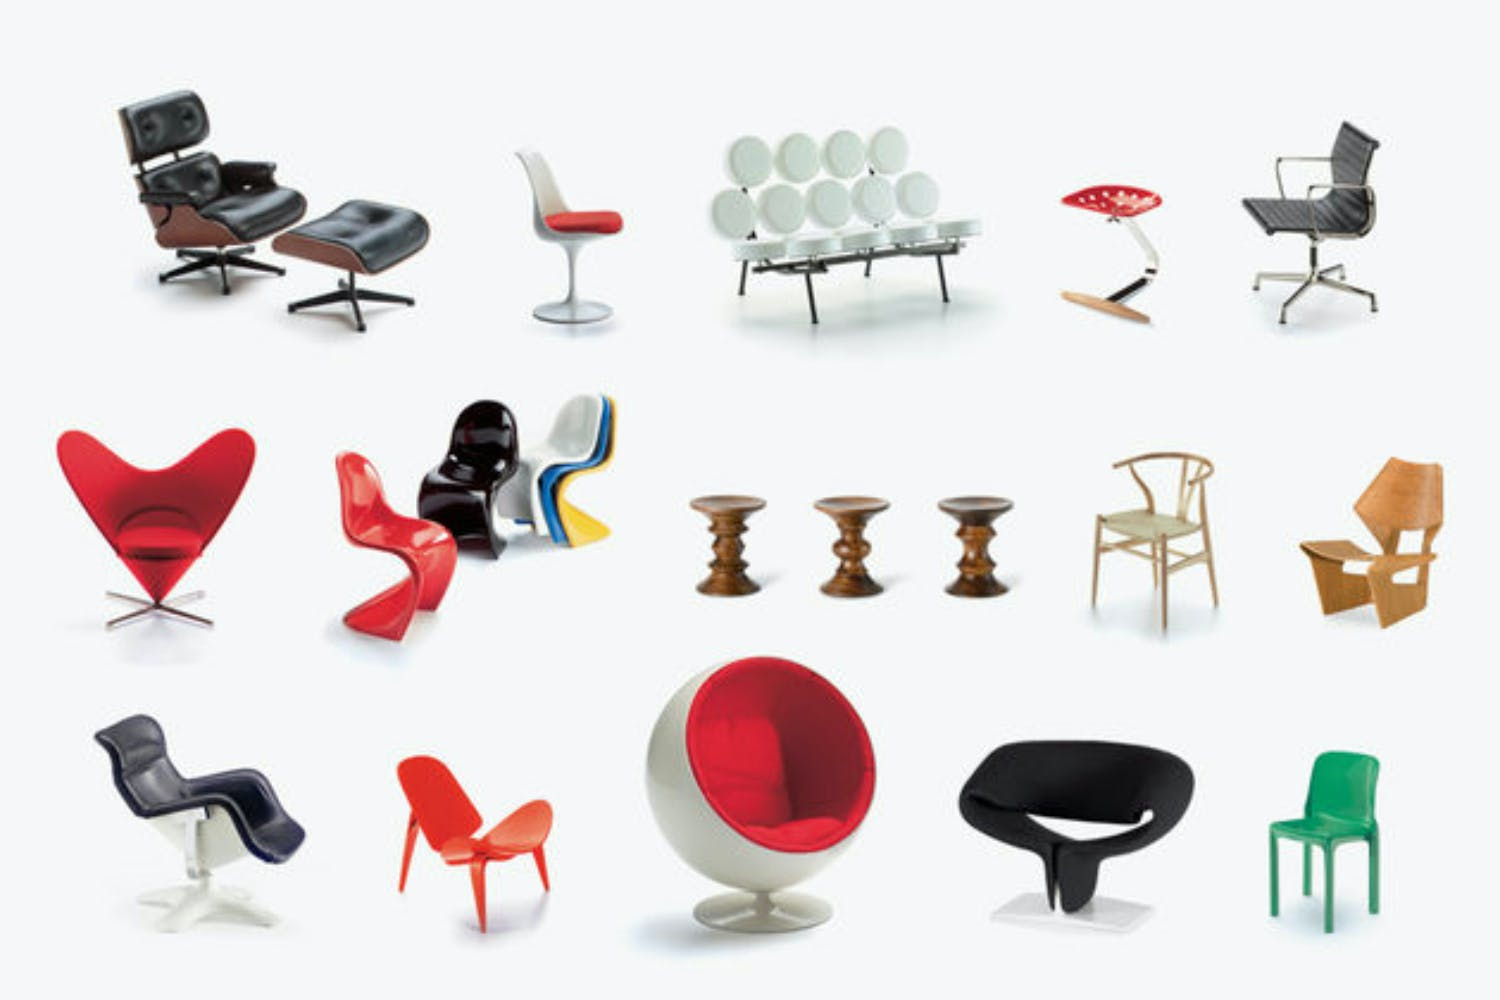 European style office furniture valentineblog net - Collection 2 By Vitra Design Museum For Vitra Space Furniture